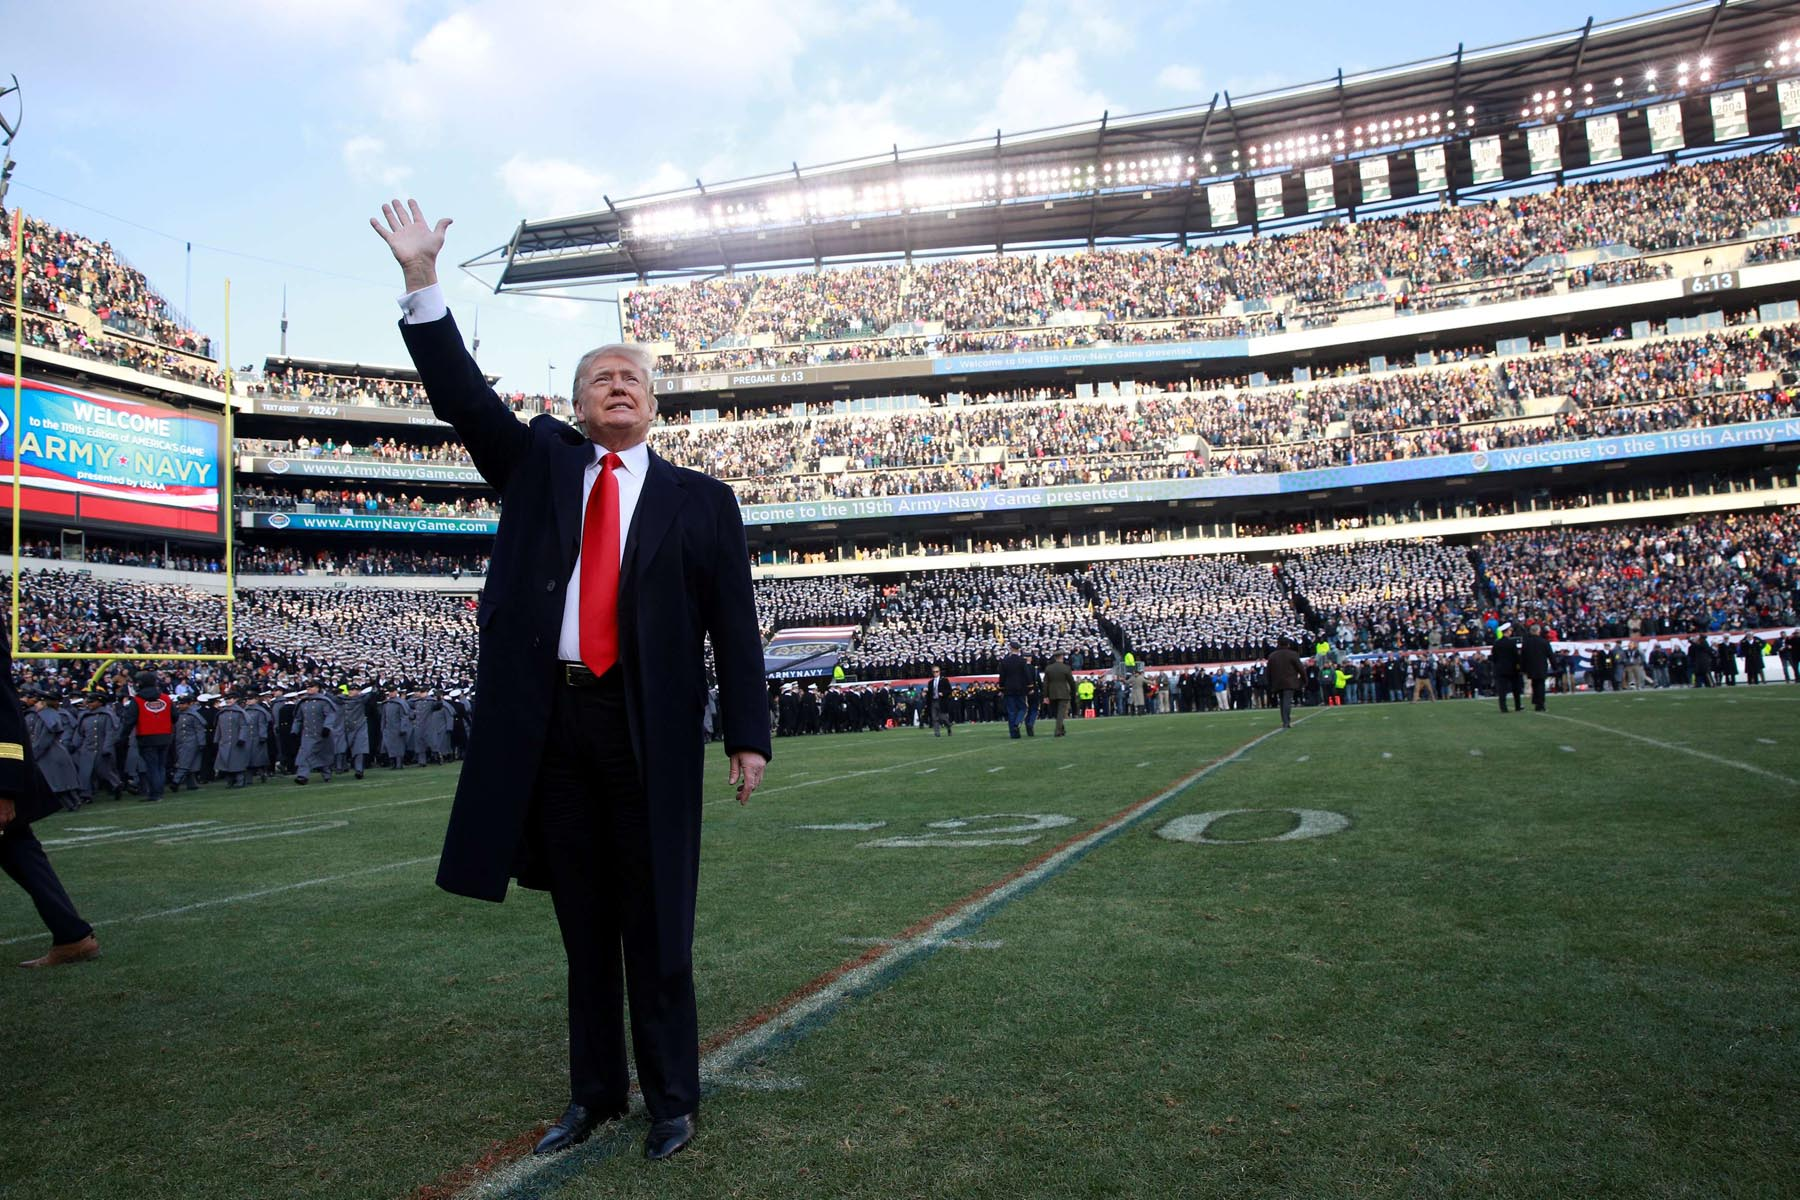 US President Donald Trump waves to the crowd at the 119th Us Army-Navy football game at Lincoln Financial Field in Philadelphia, last December. (Reuters)